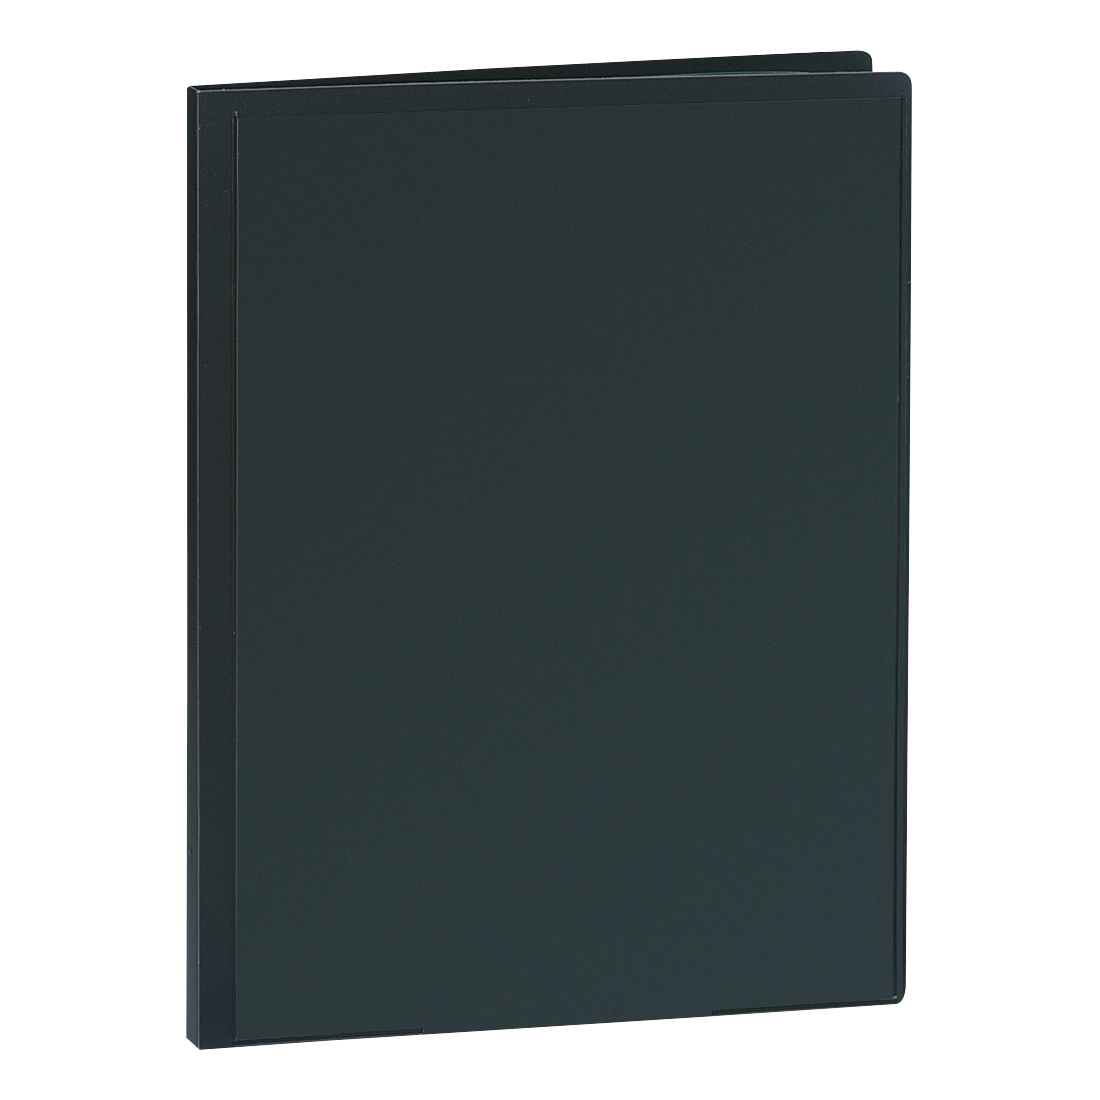 5 Star Office Display Book Polypropylene 20 Pockets A4 Black